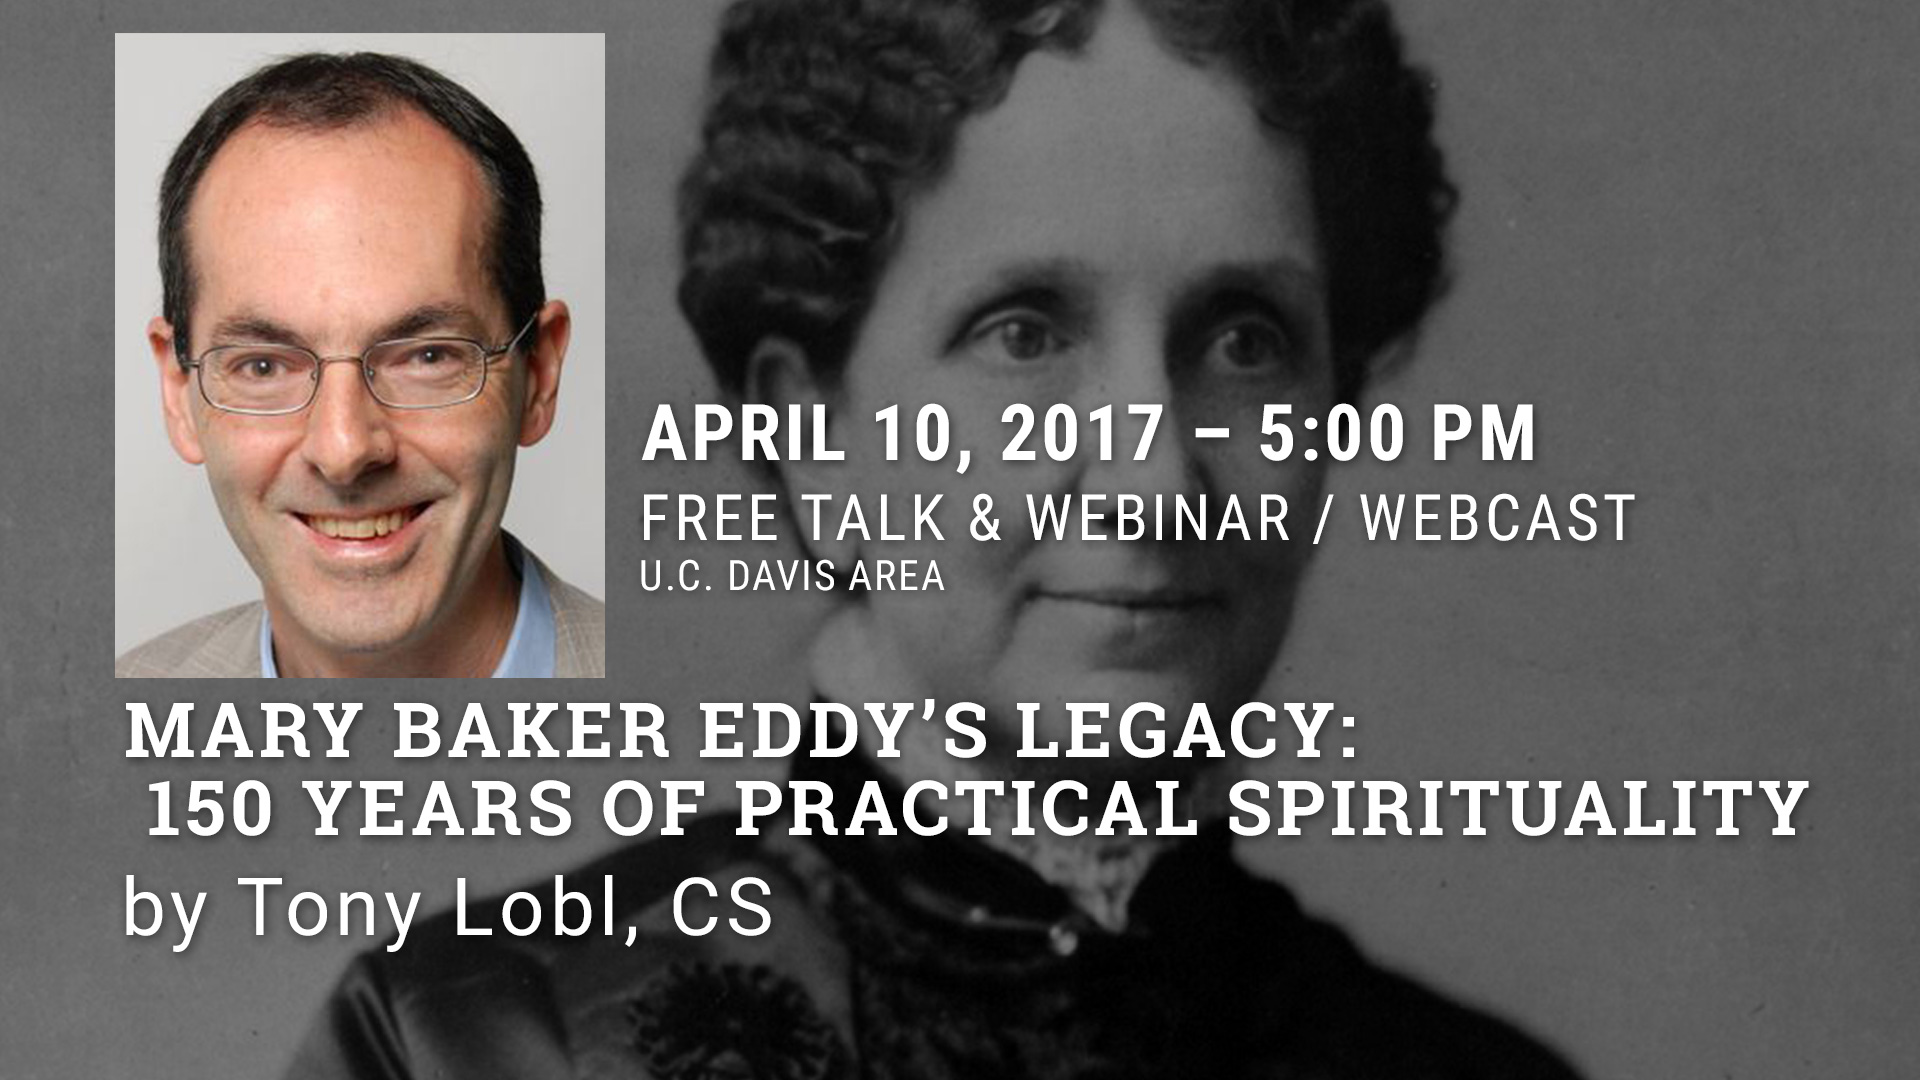 April 10, 2017 - Mary Baker Eddy's Legacy: 150 Years of Practical Spirituality by Tony Lobl, CS